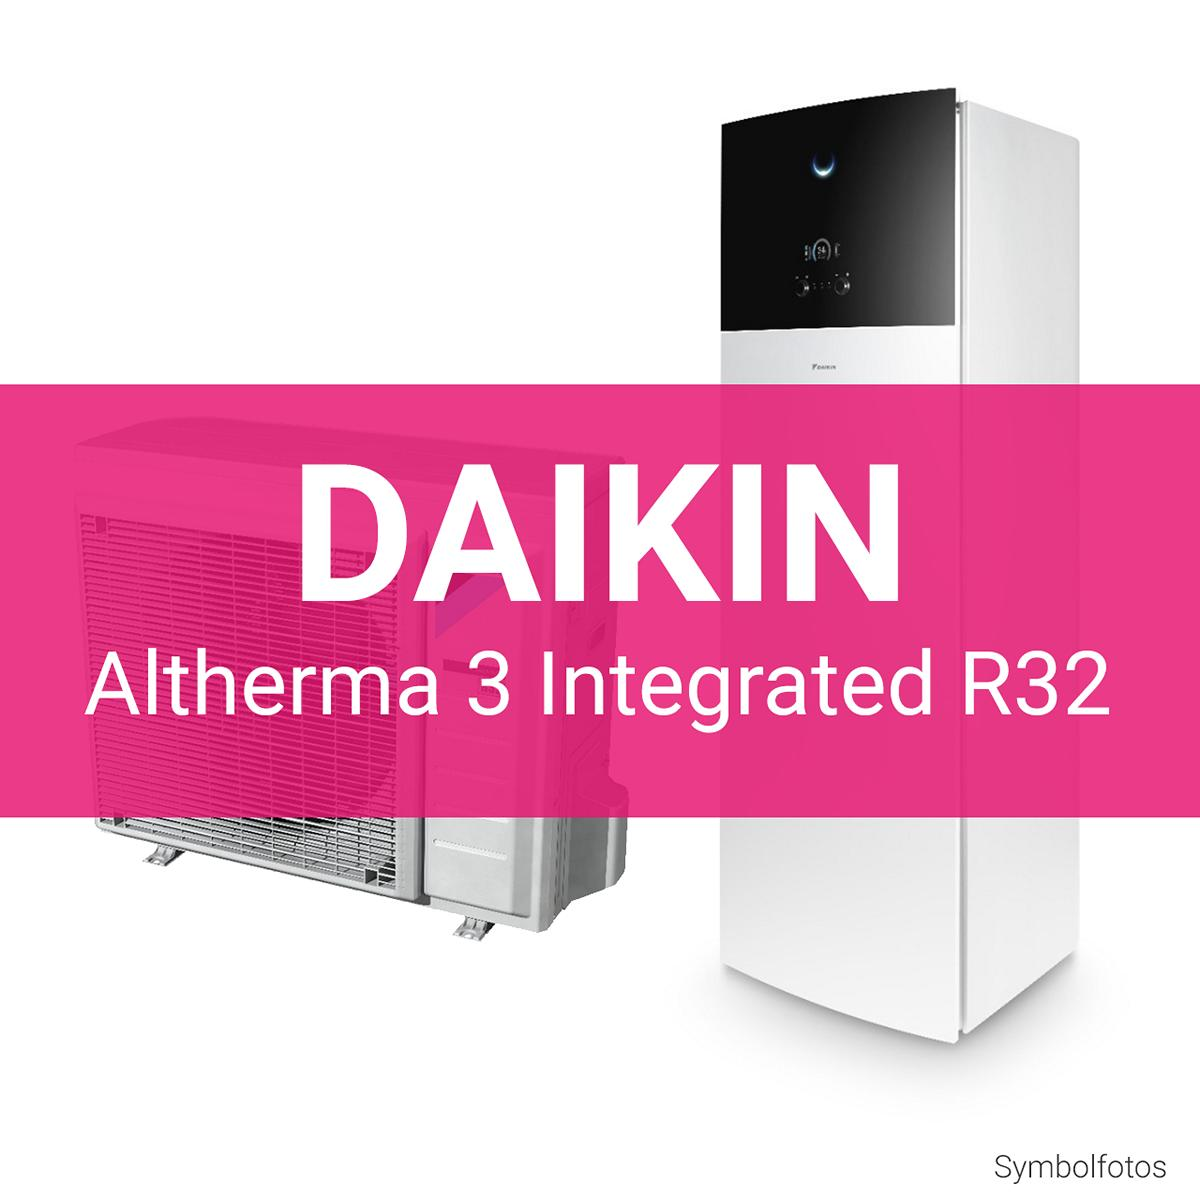 Daikin Altherma 2 Integrated R32